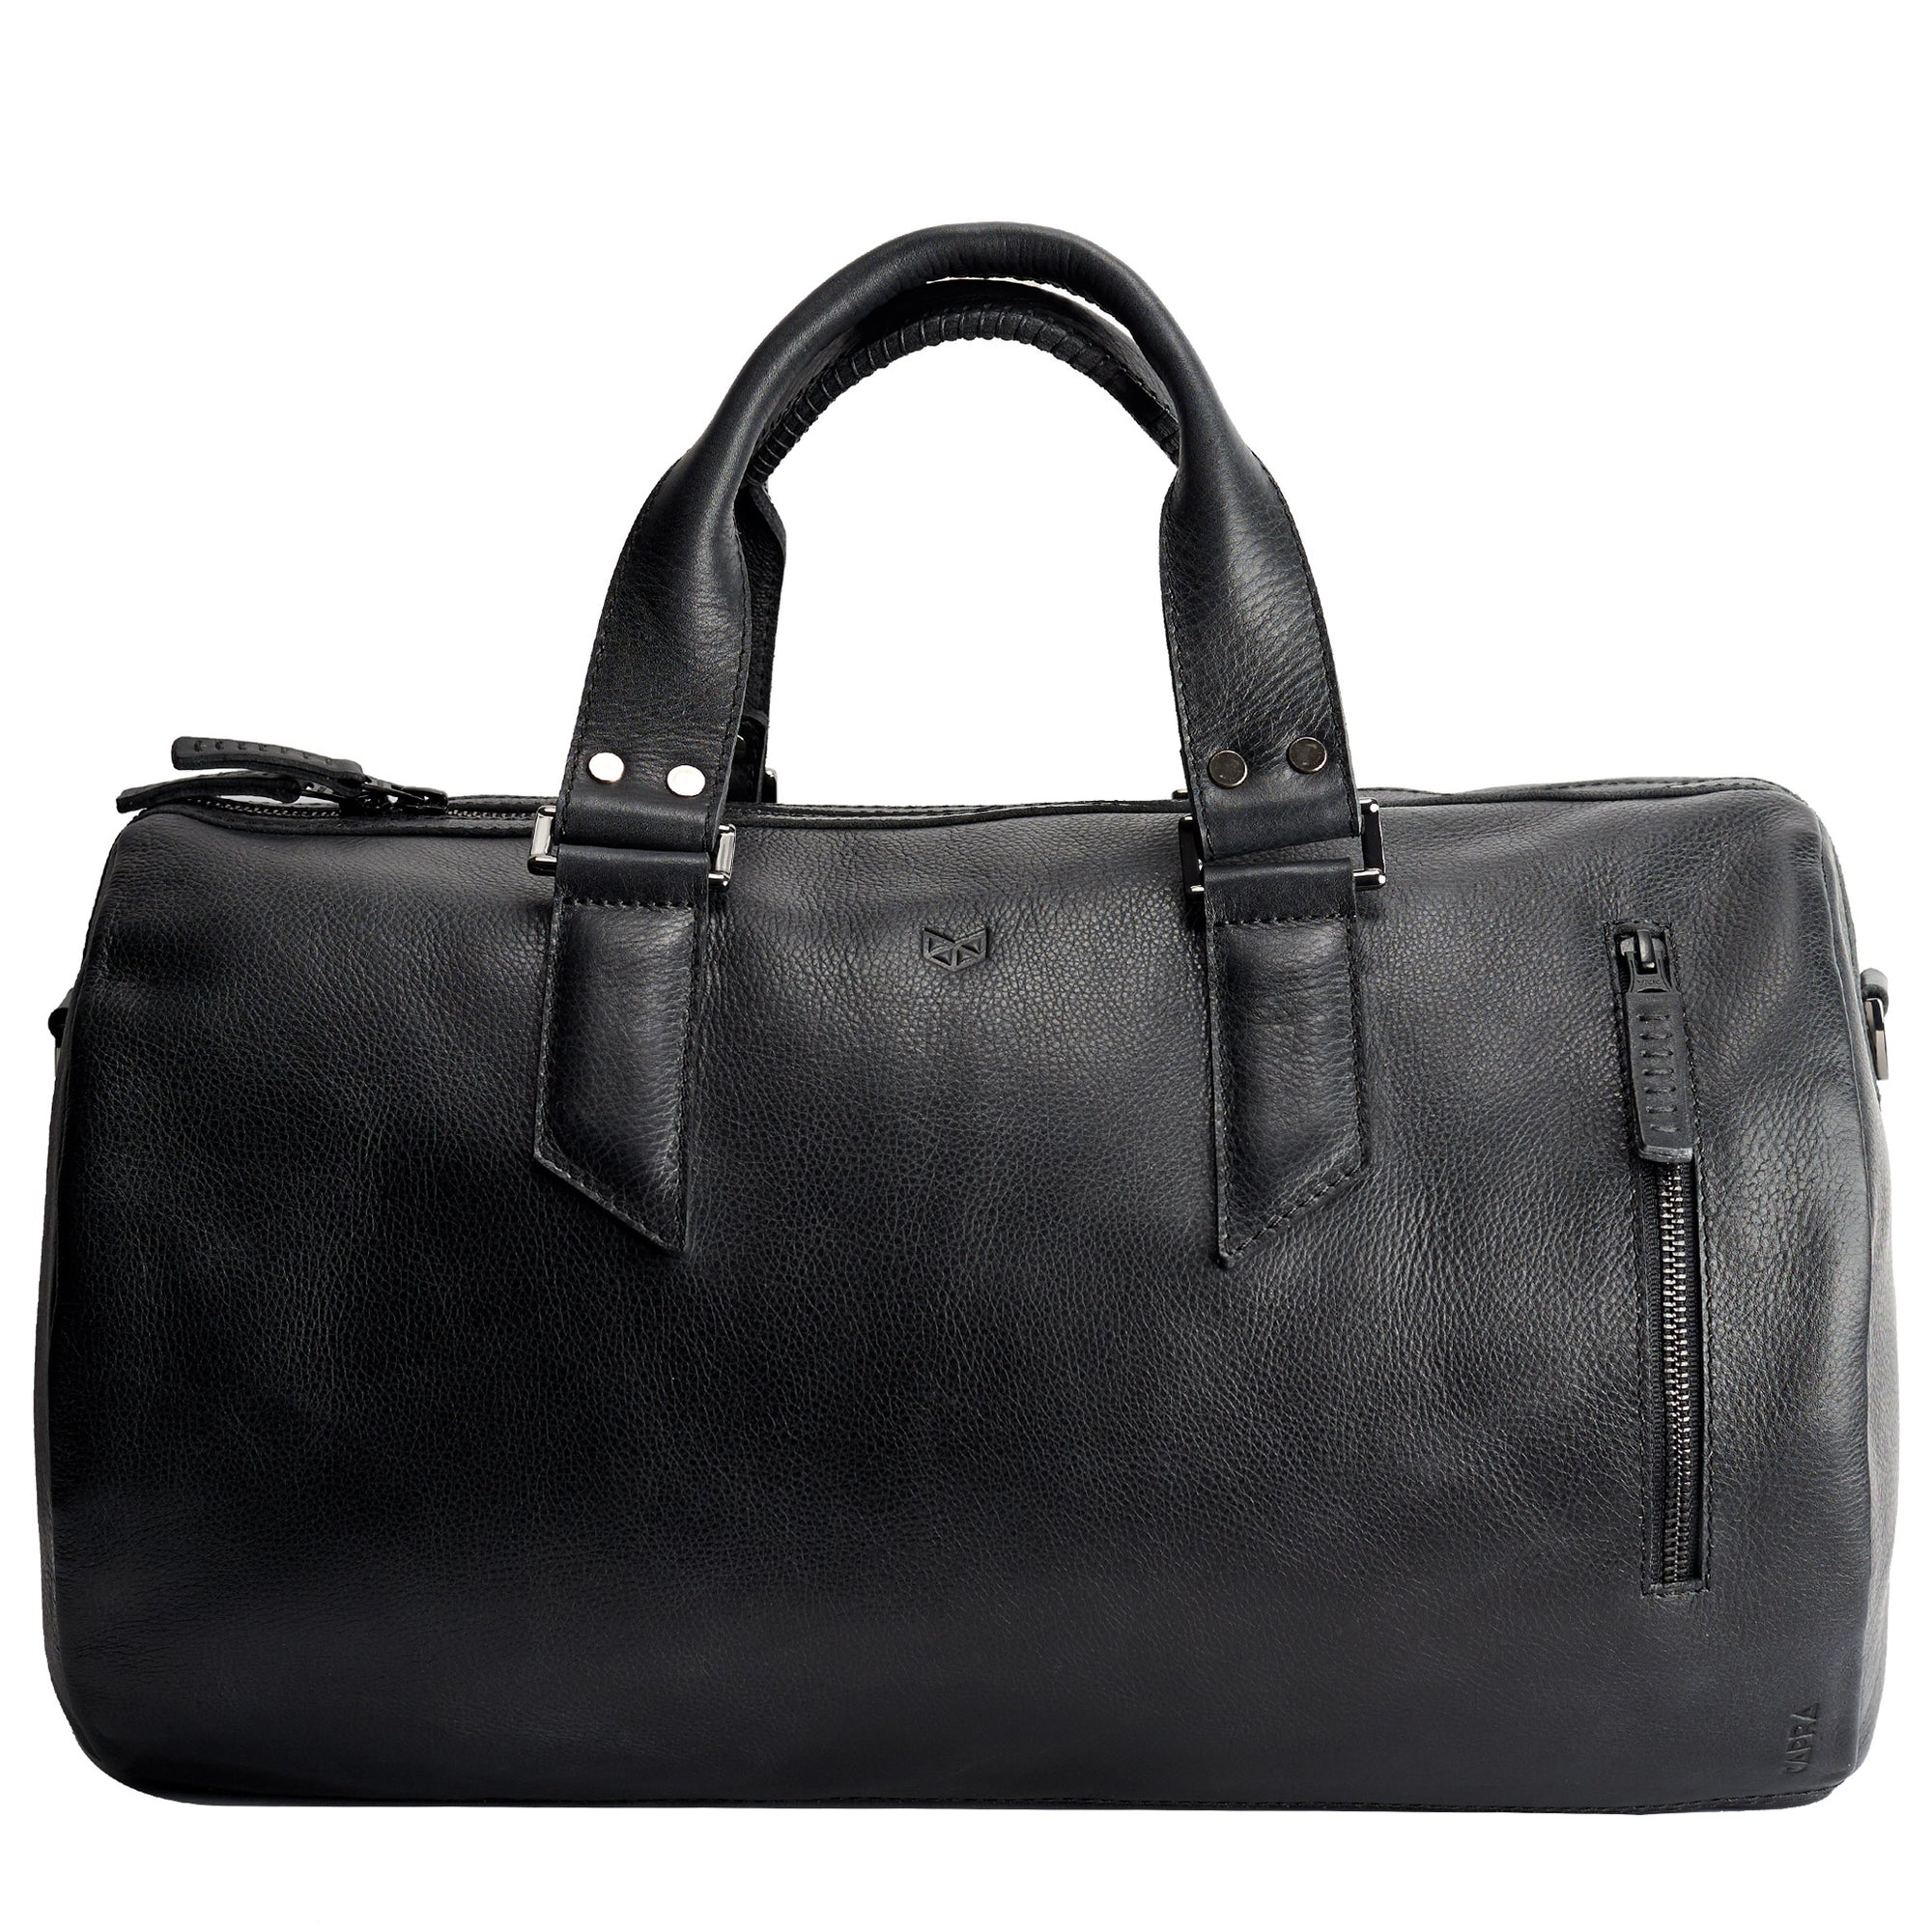 Black Duffle leather travel bag for men. Gym athletic bag